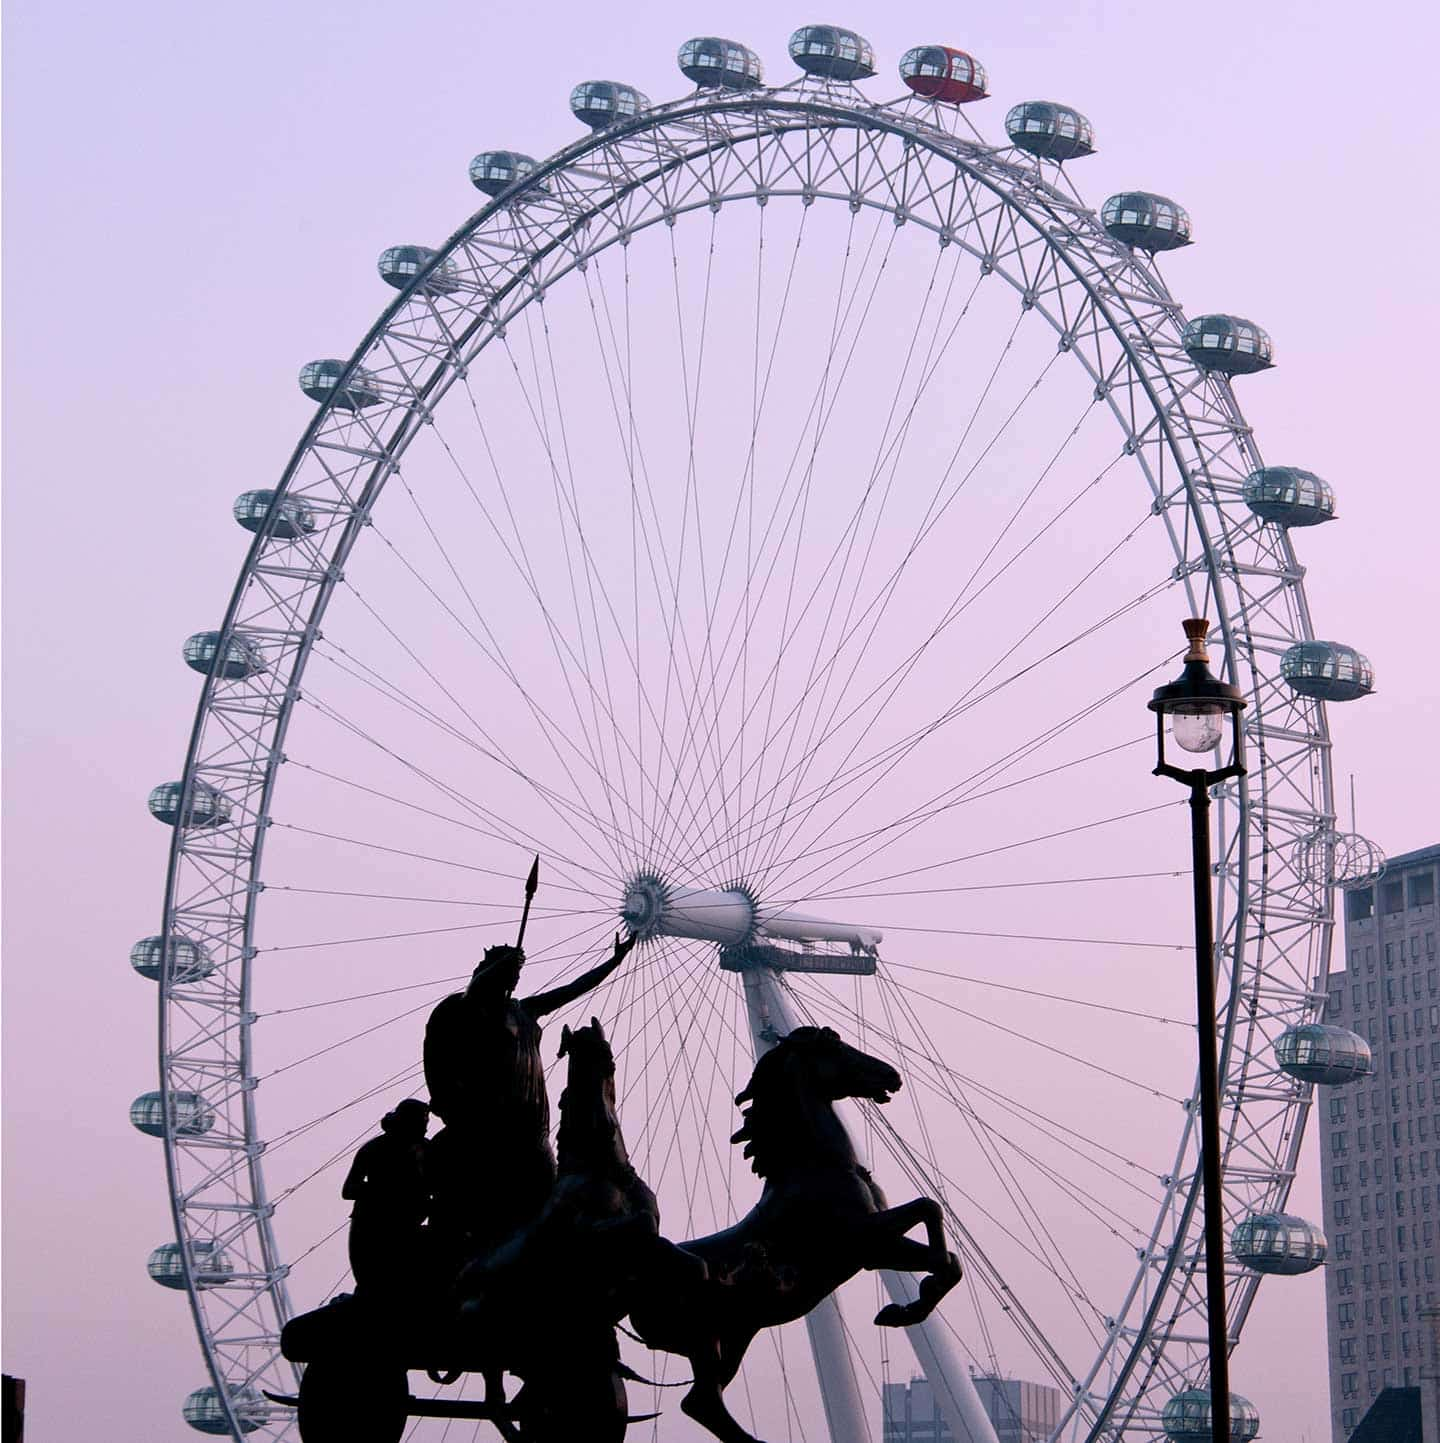 Image of Queen Boadicea and chariot statue, with the London Eye behind